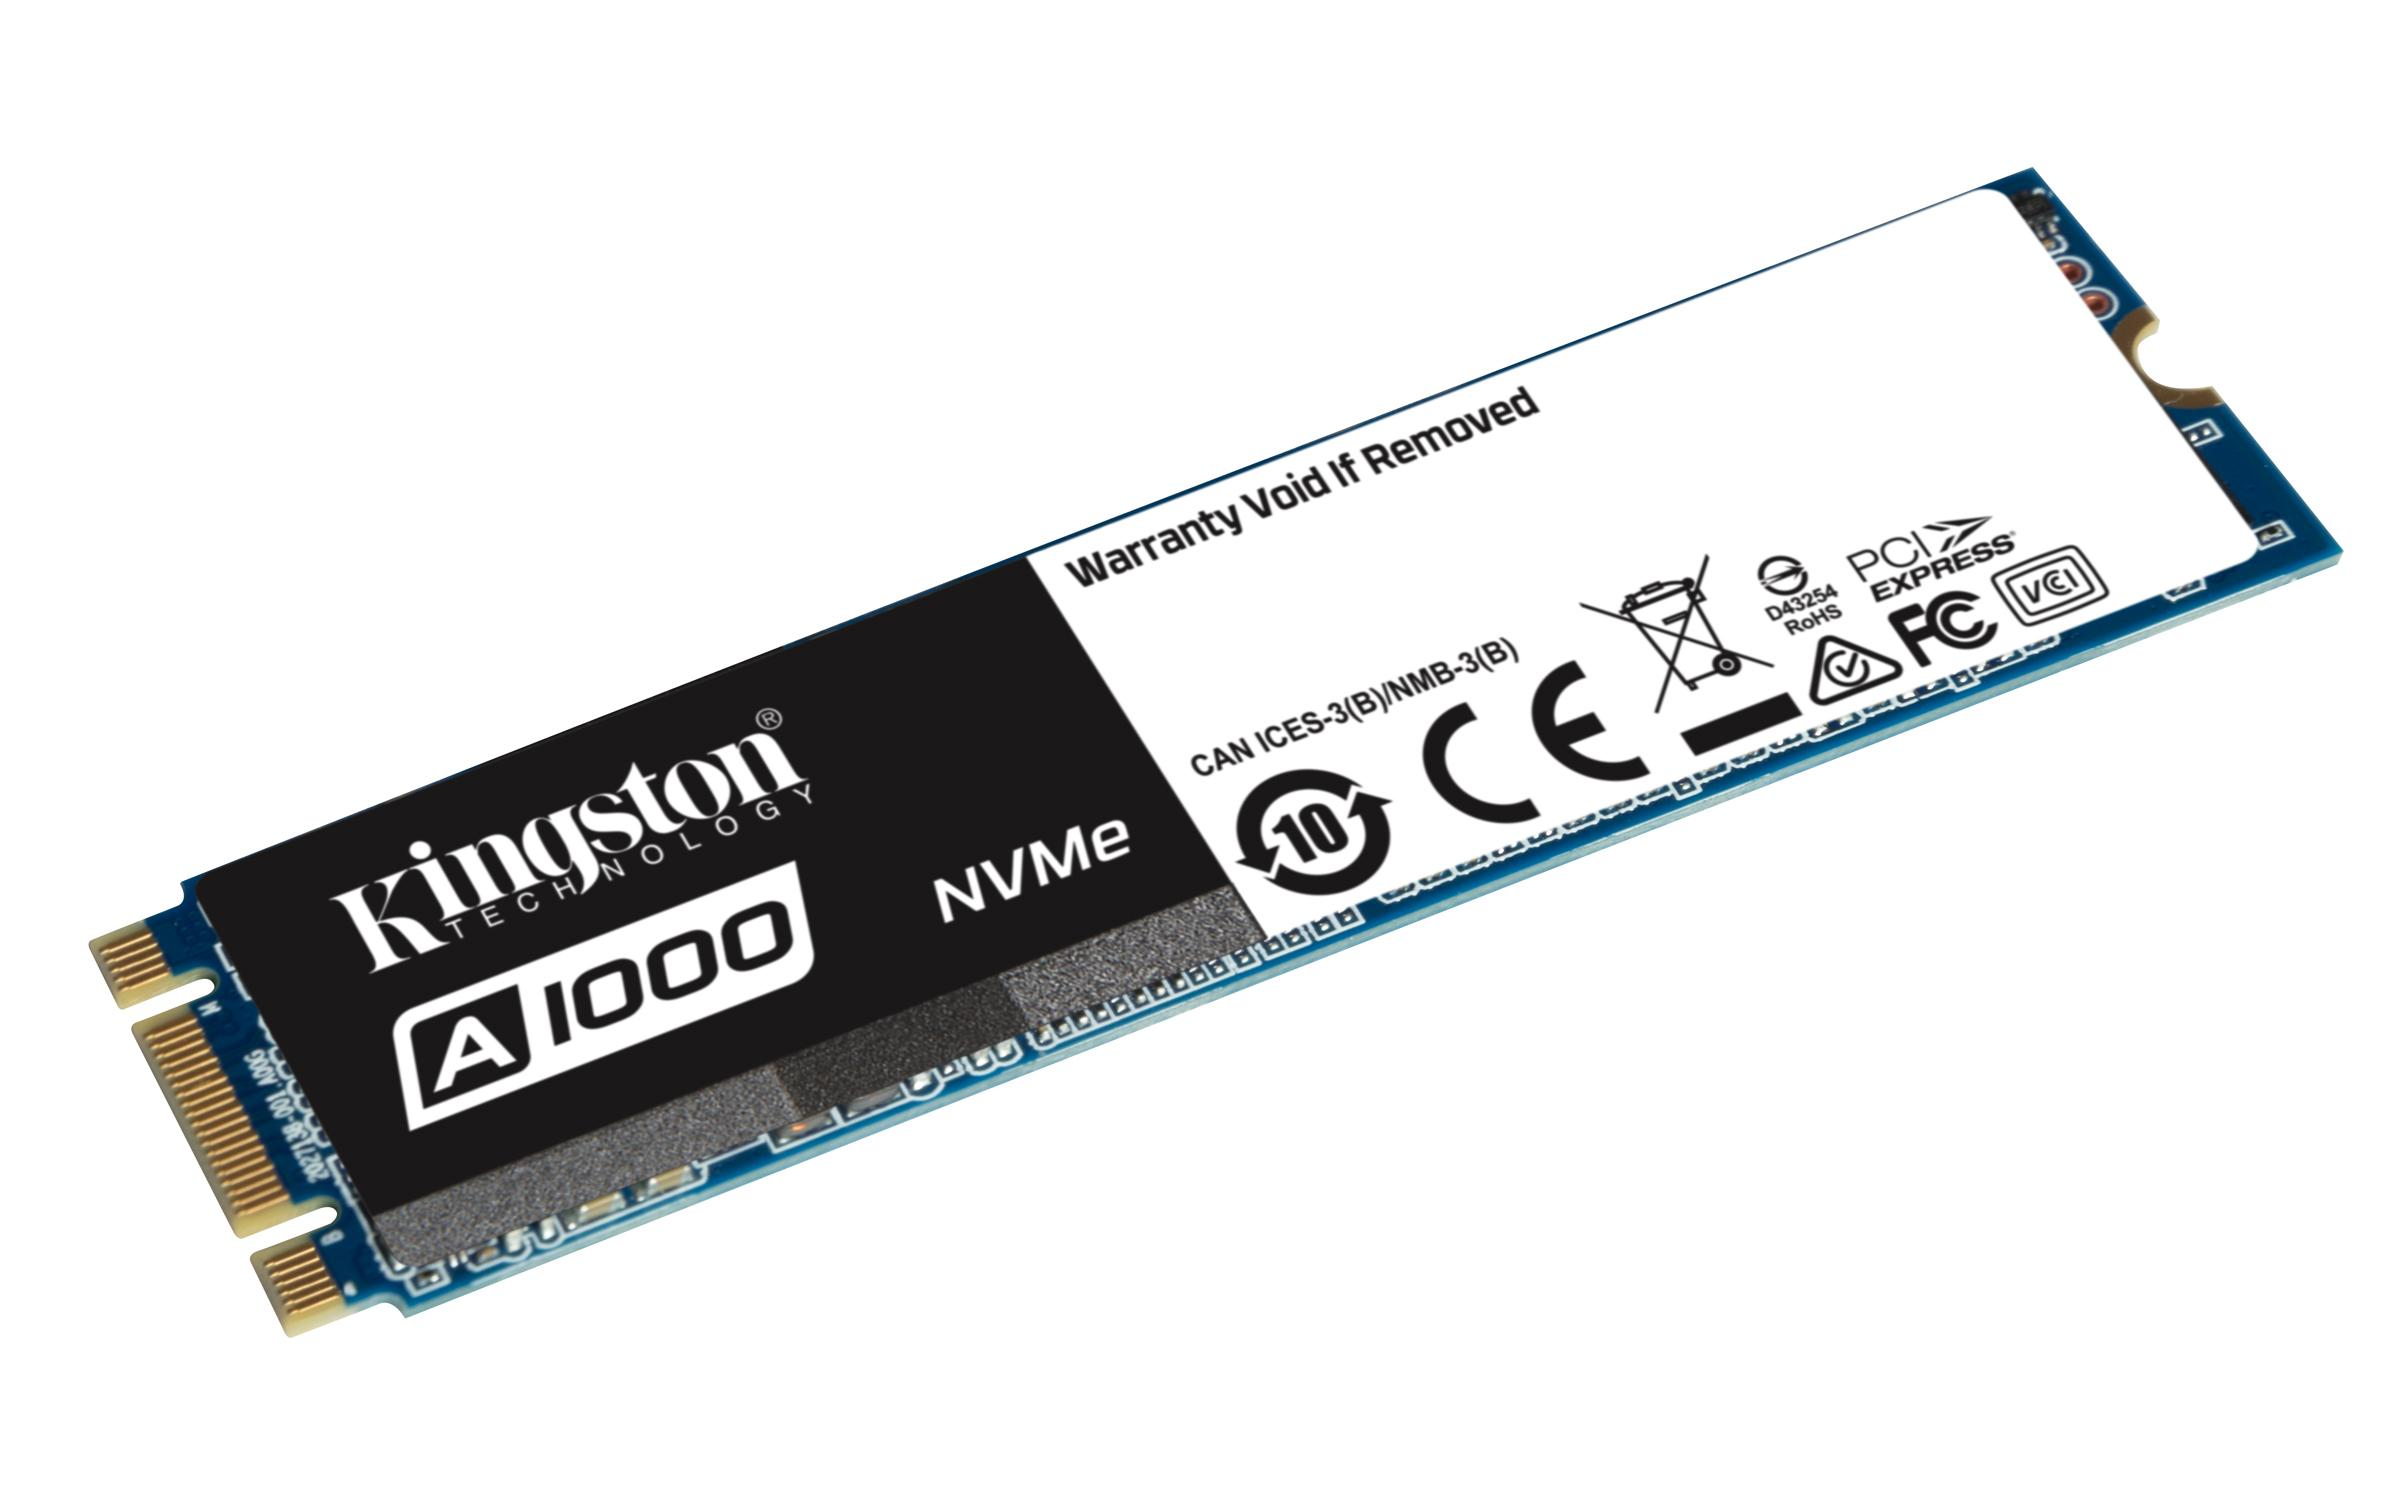 Kingston SSD 960 GB A1000 PCI Express drive